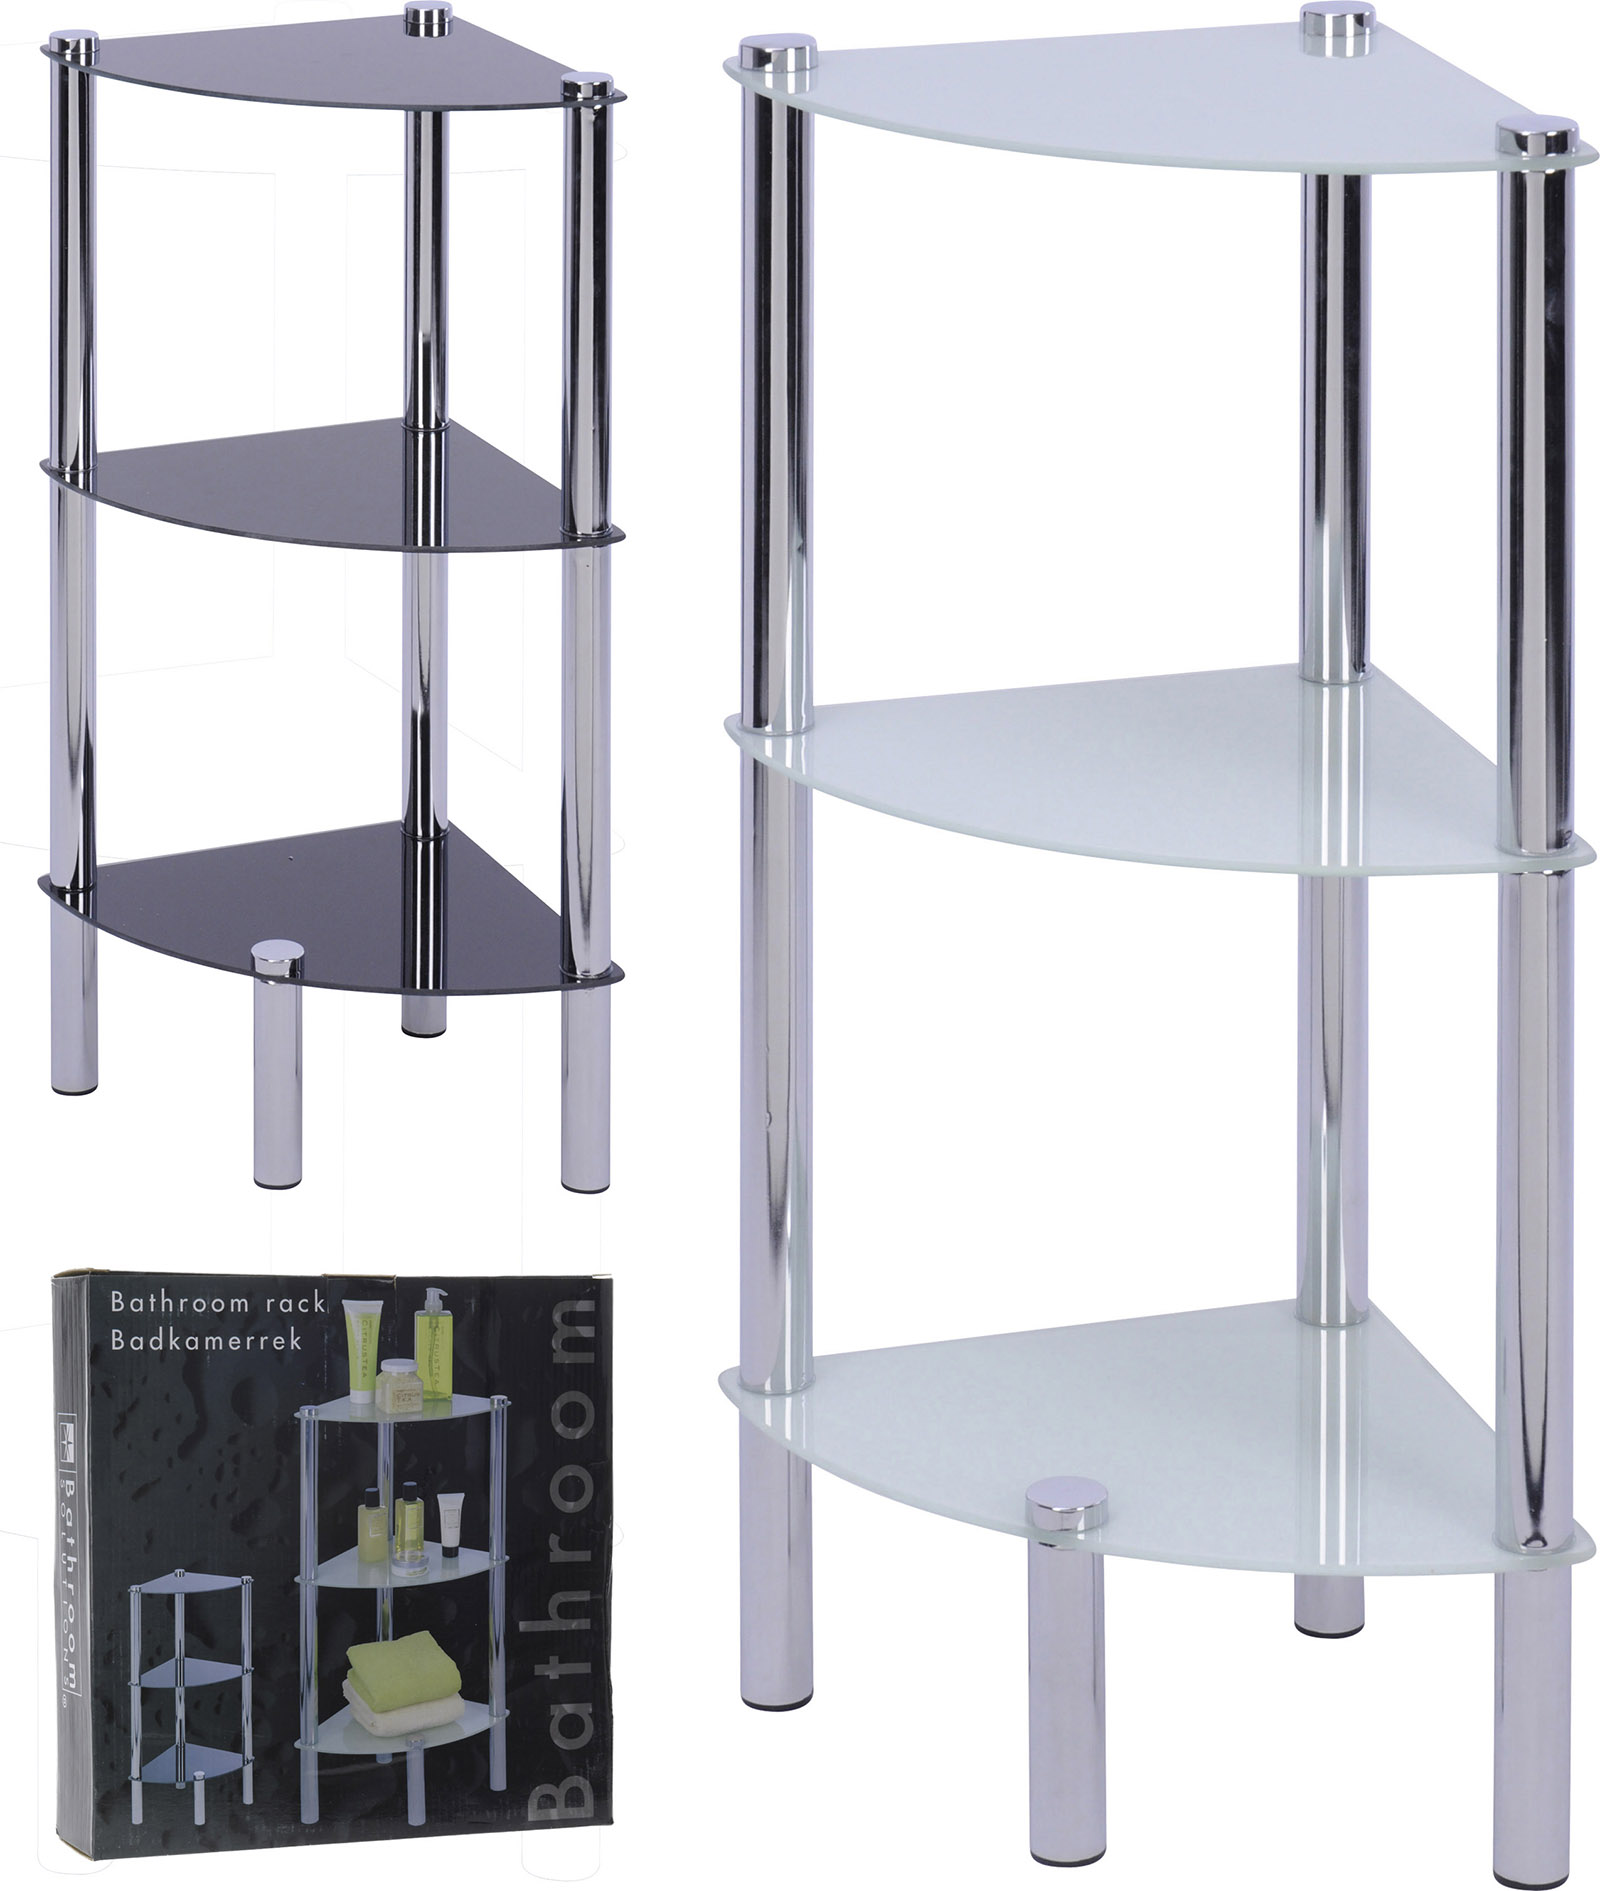 Bathroom shelf rack 3 glass sheets corner standing shelves for Bathroom glass shelves